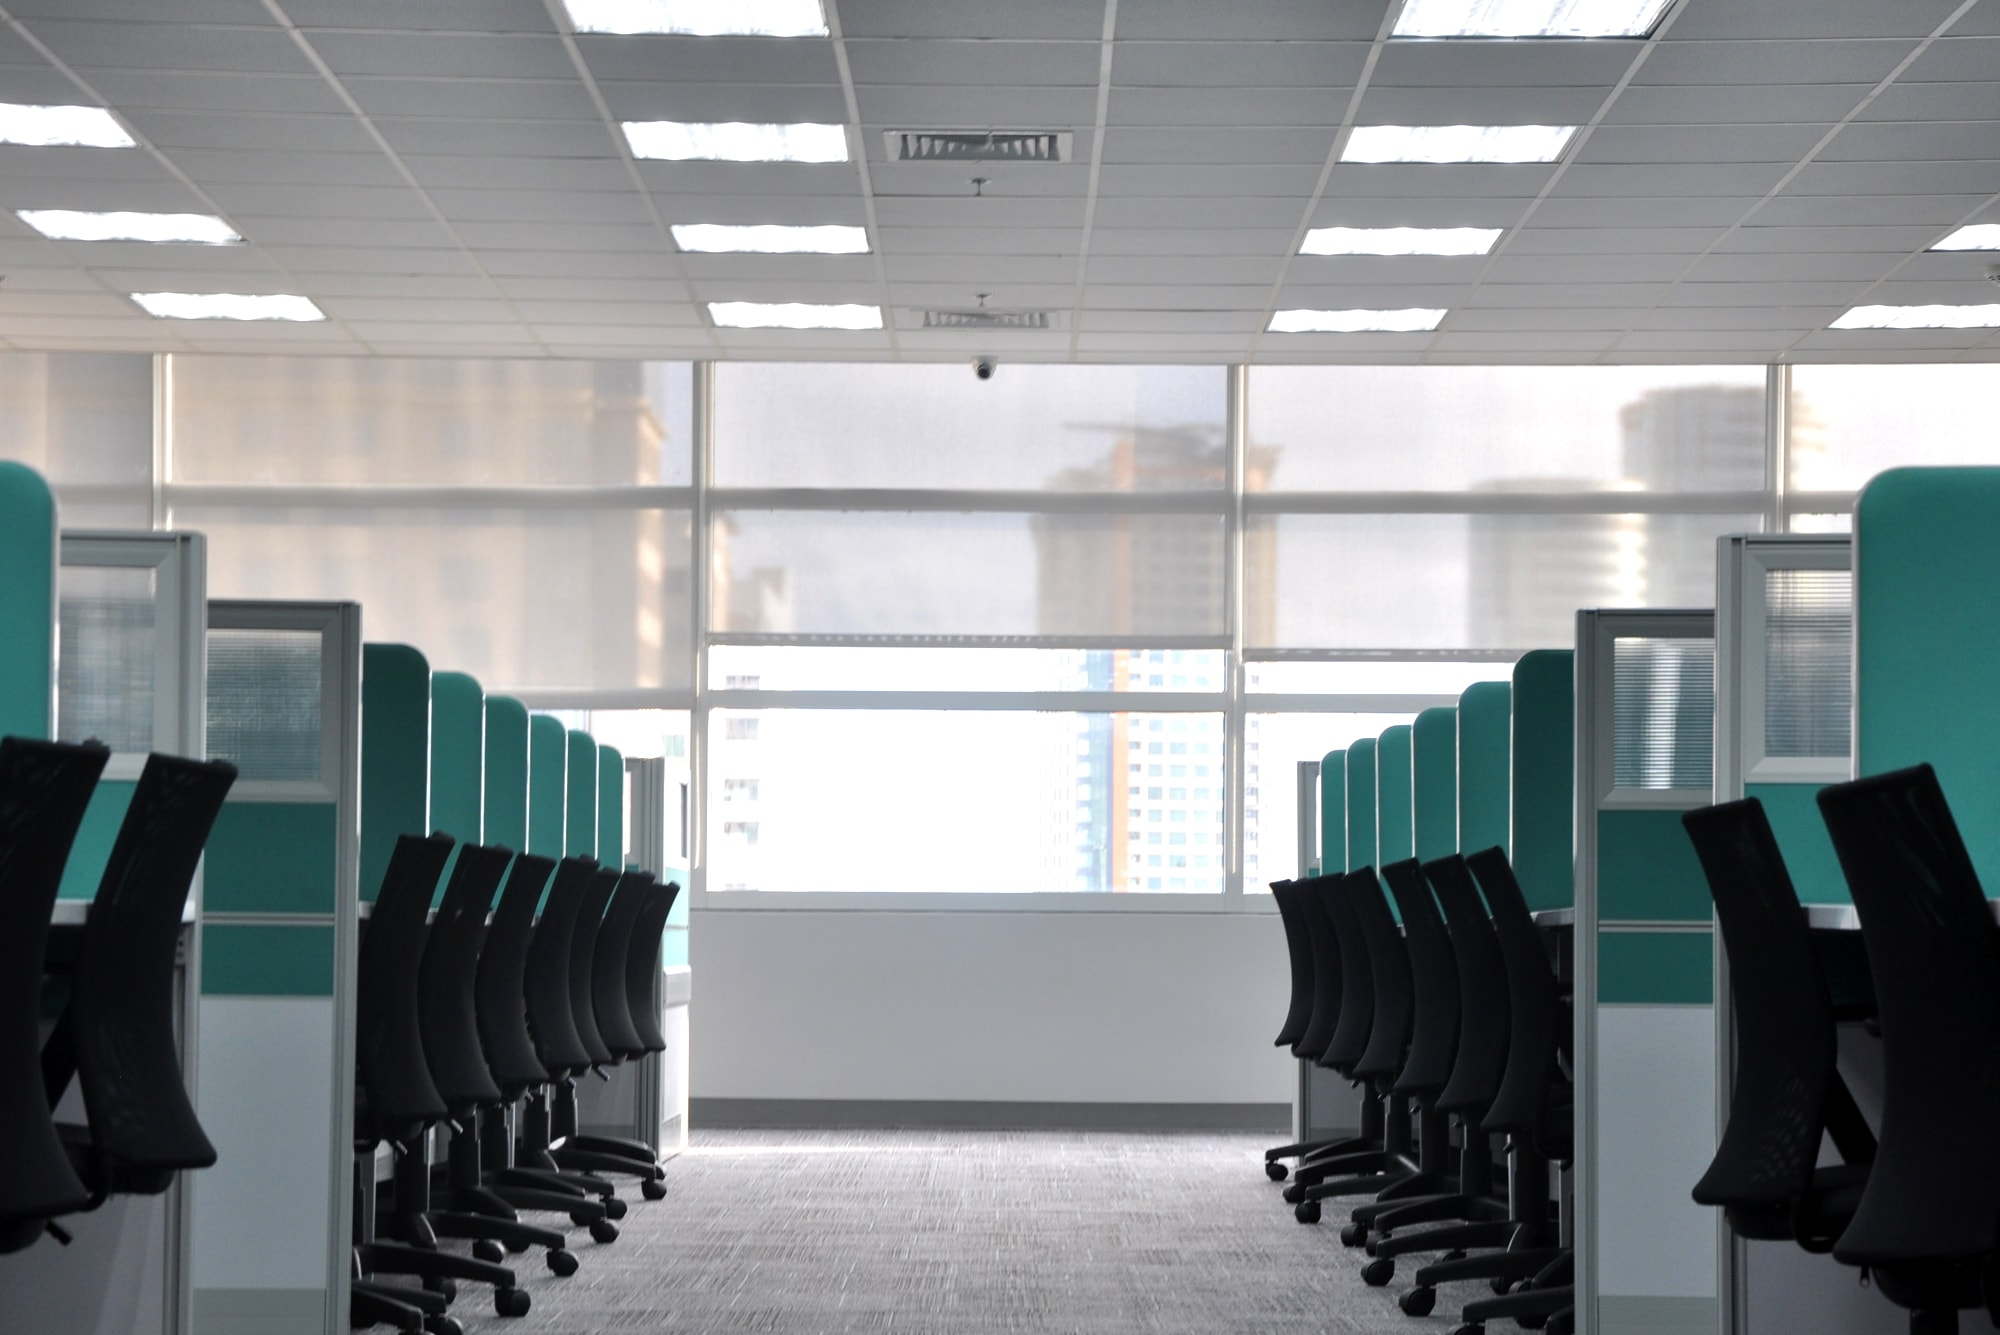 3 Lighting Updates You Can Introduce in Your Office